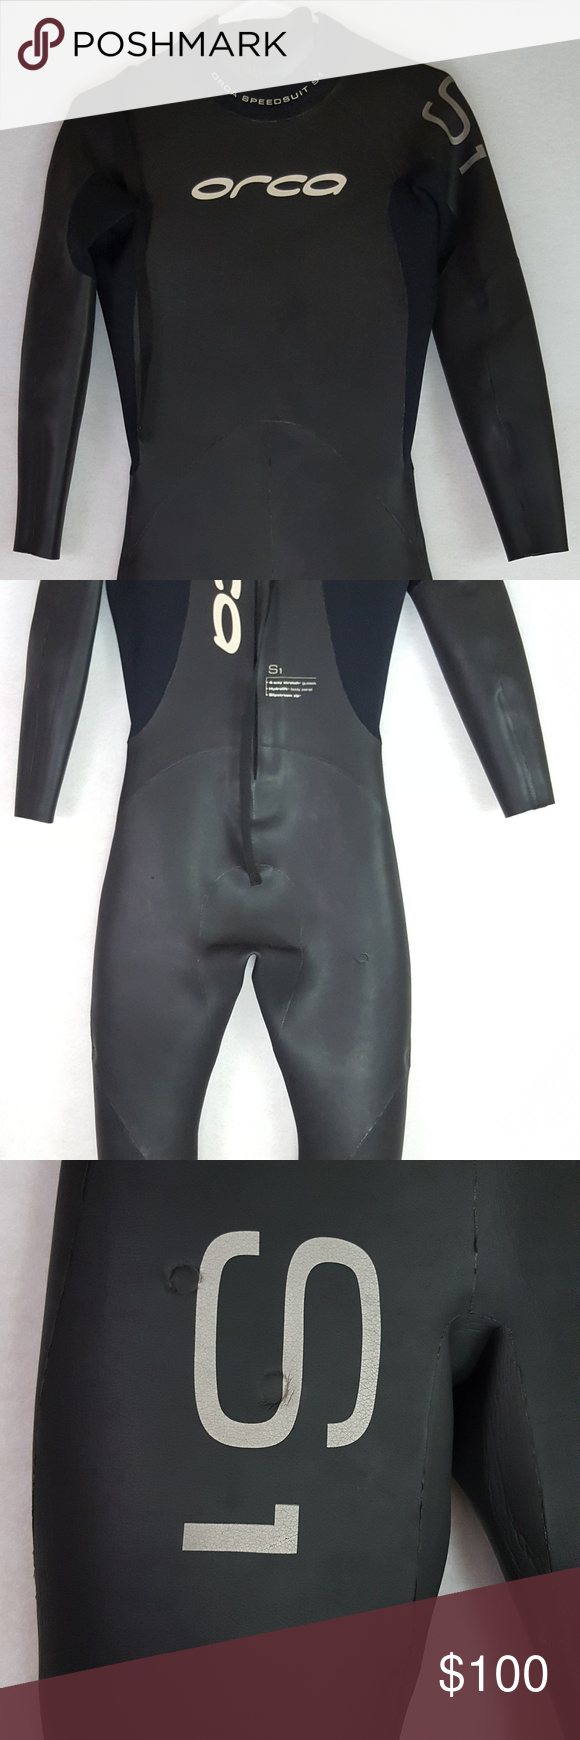 6de6f28a19 Orca S1 Wetsuit Womens Small Black Fitted Full Bod Orca Women s Wetsuit  SpeedSuit S Black Rubber